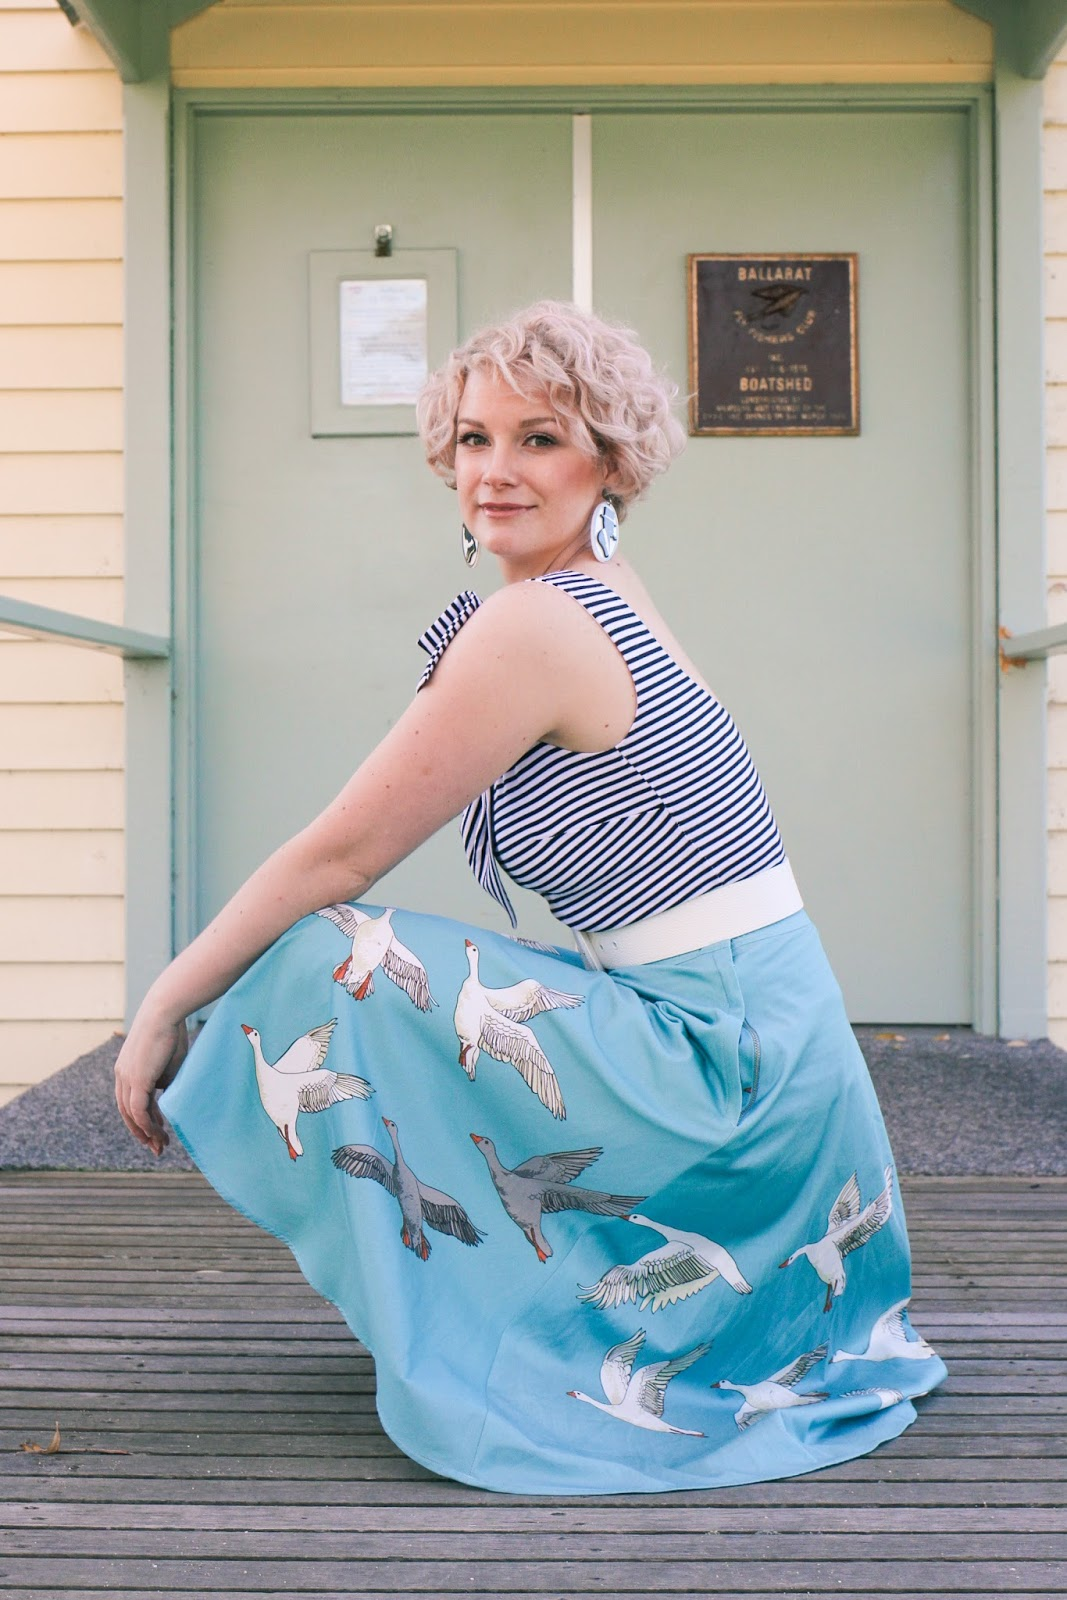 @findingfemme wears miss shop striped bow top, erstwilder earrings, Modcloth heels, Review Australia belt and Jane skirt in Geese from Bob by Dawn O'Porter in Ballarat.